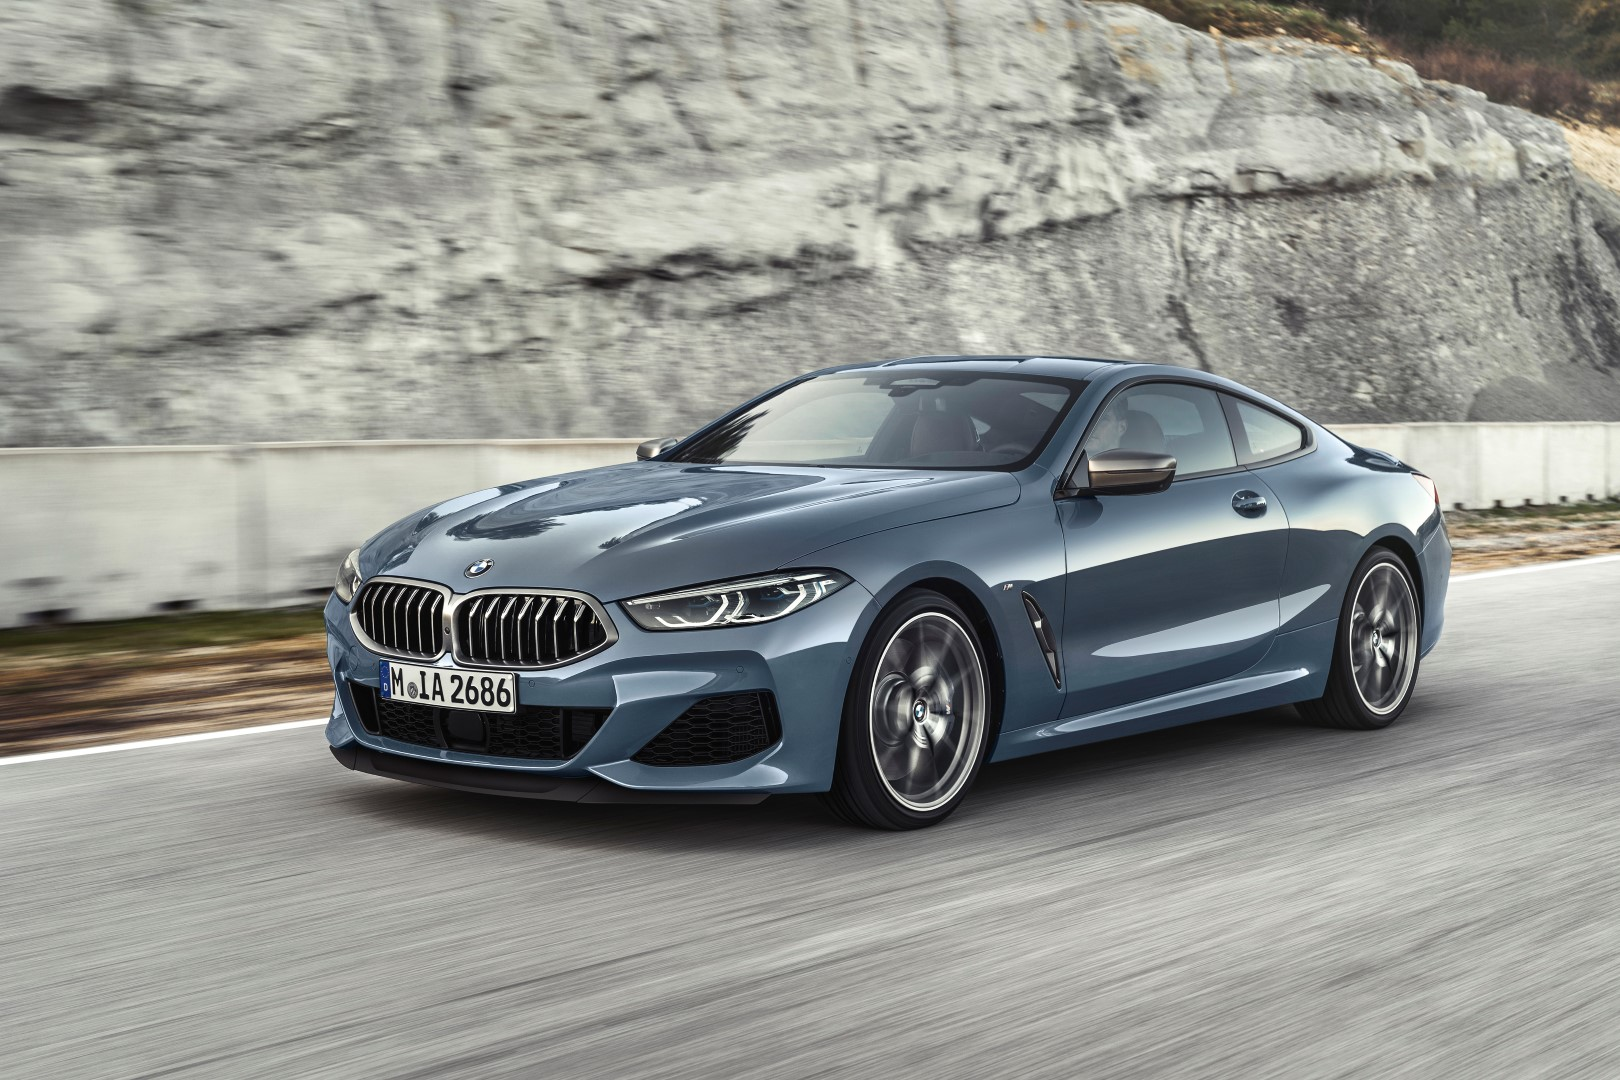 The New Bmw 8 Series Coupe Finally Revealed With Superb